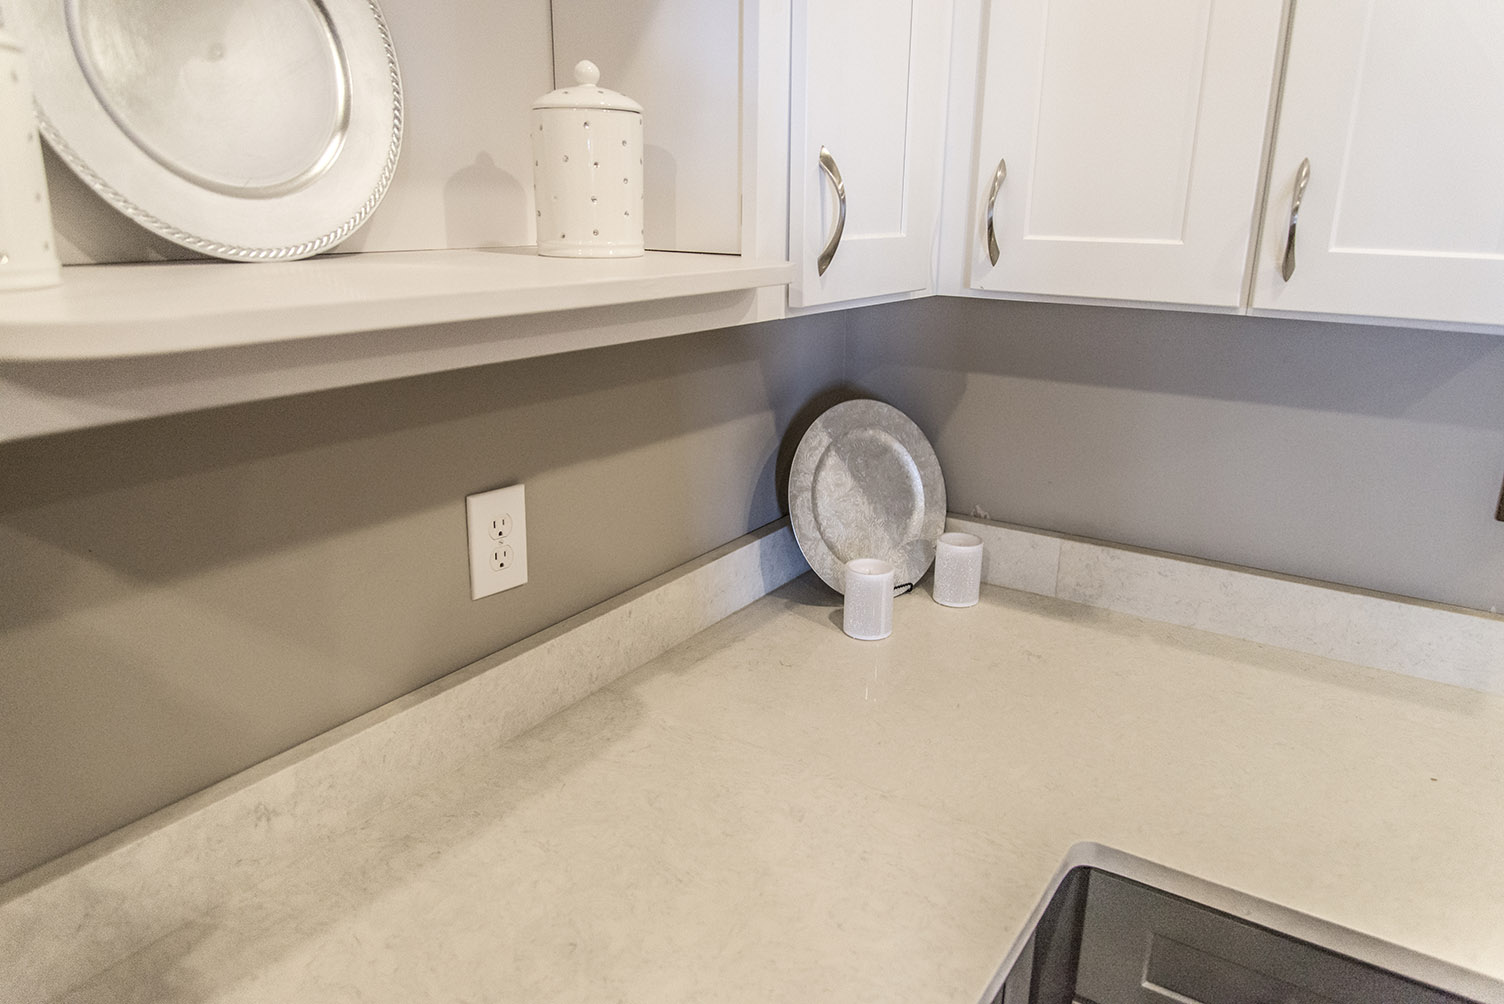 Carrera Classic Quartz Countertops with Gray Base Cabinets & White Upper Cabinets and Open Shelving